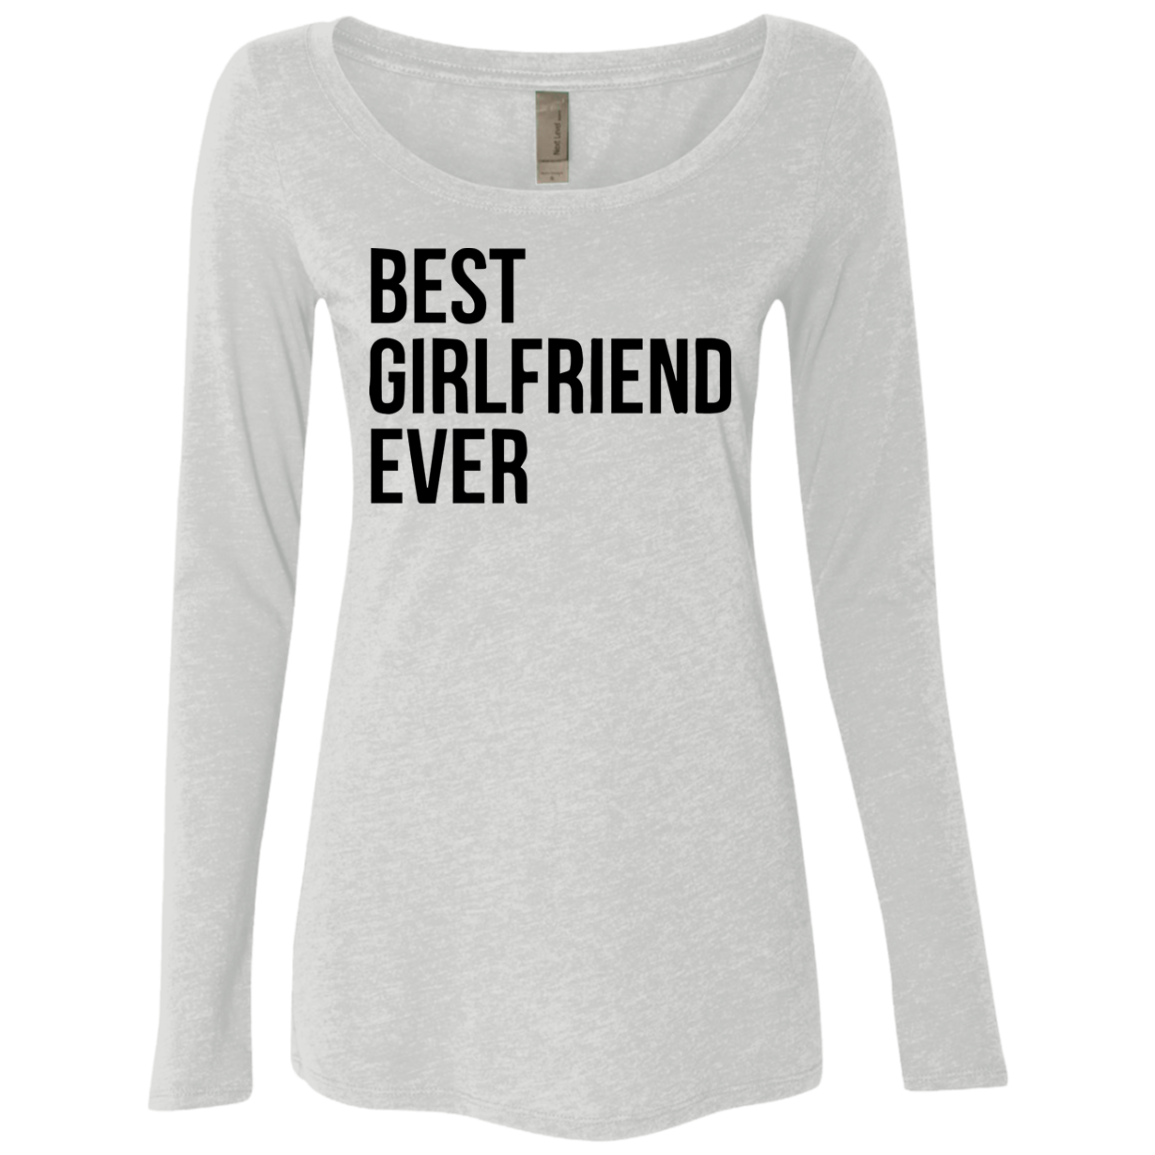 Best Girlfriend Ever Women's Long Sleeve Tee